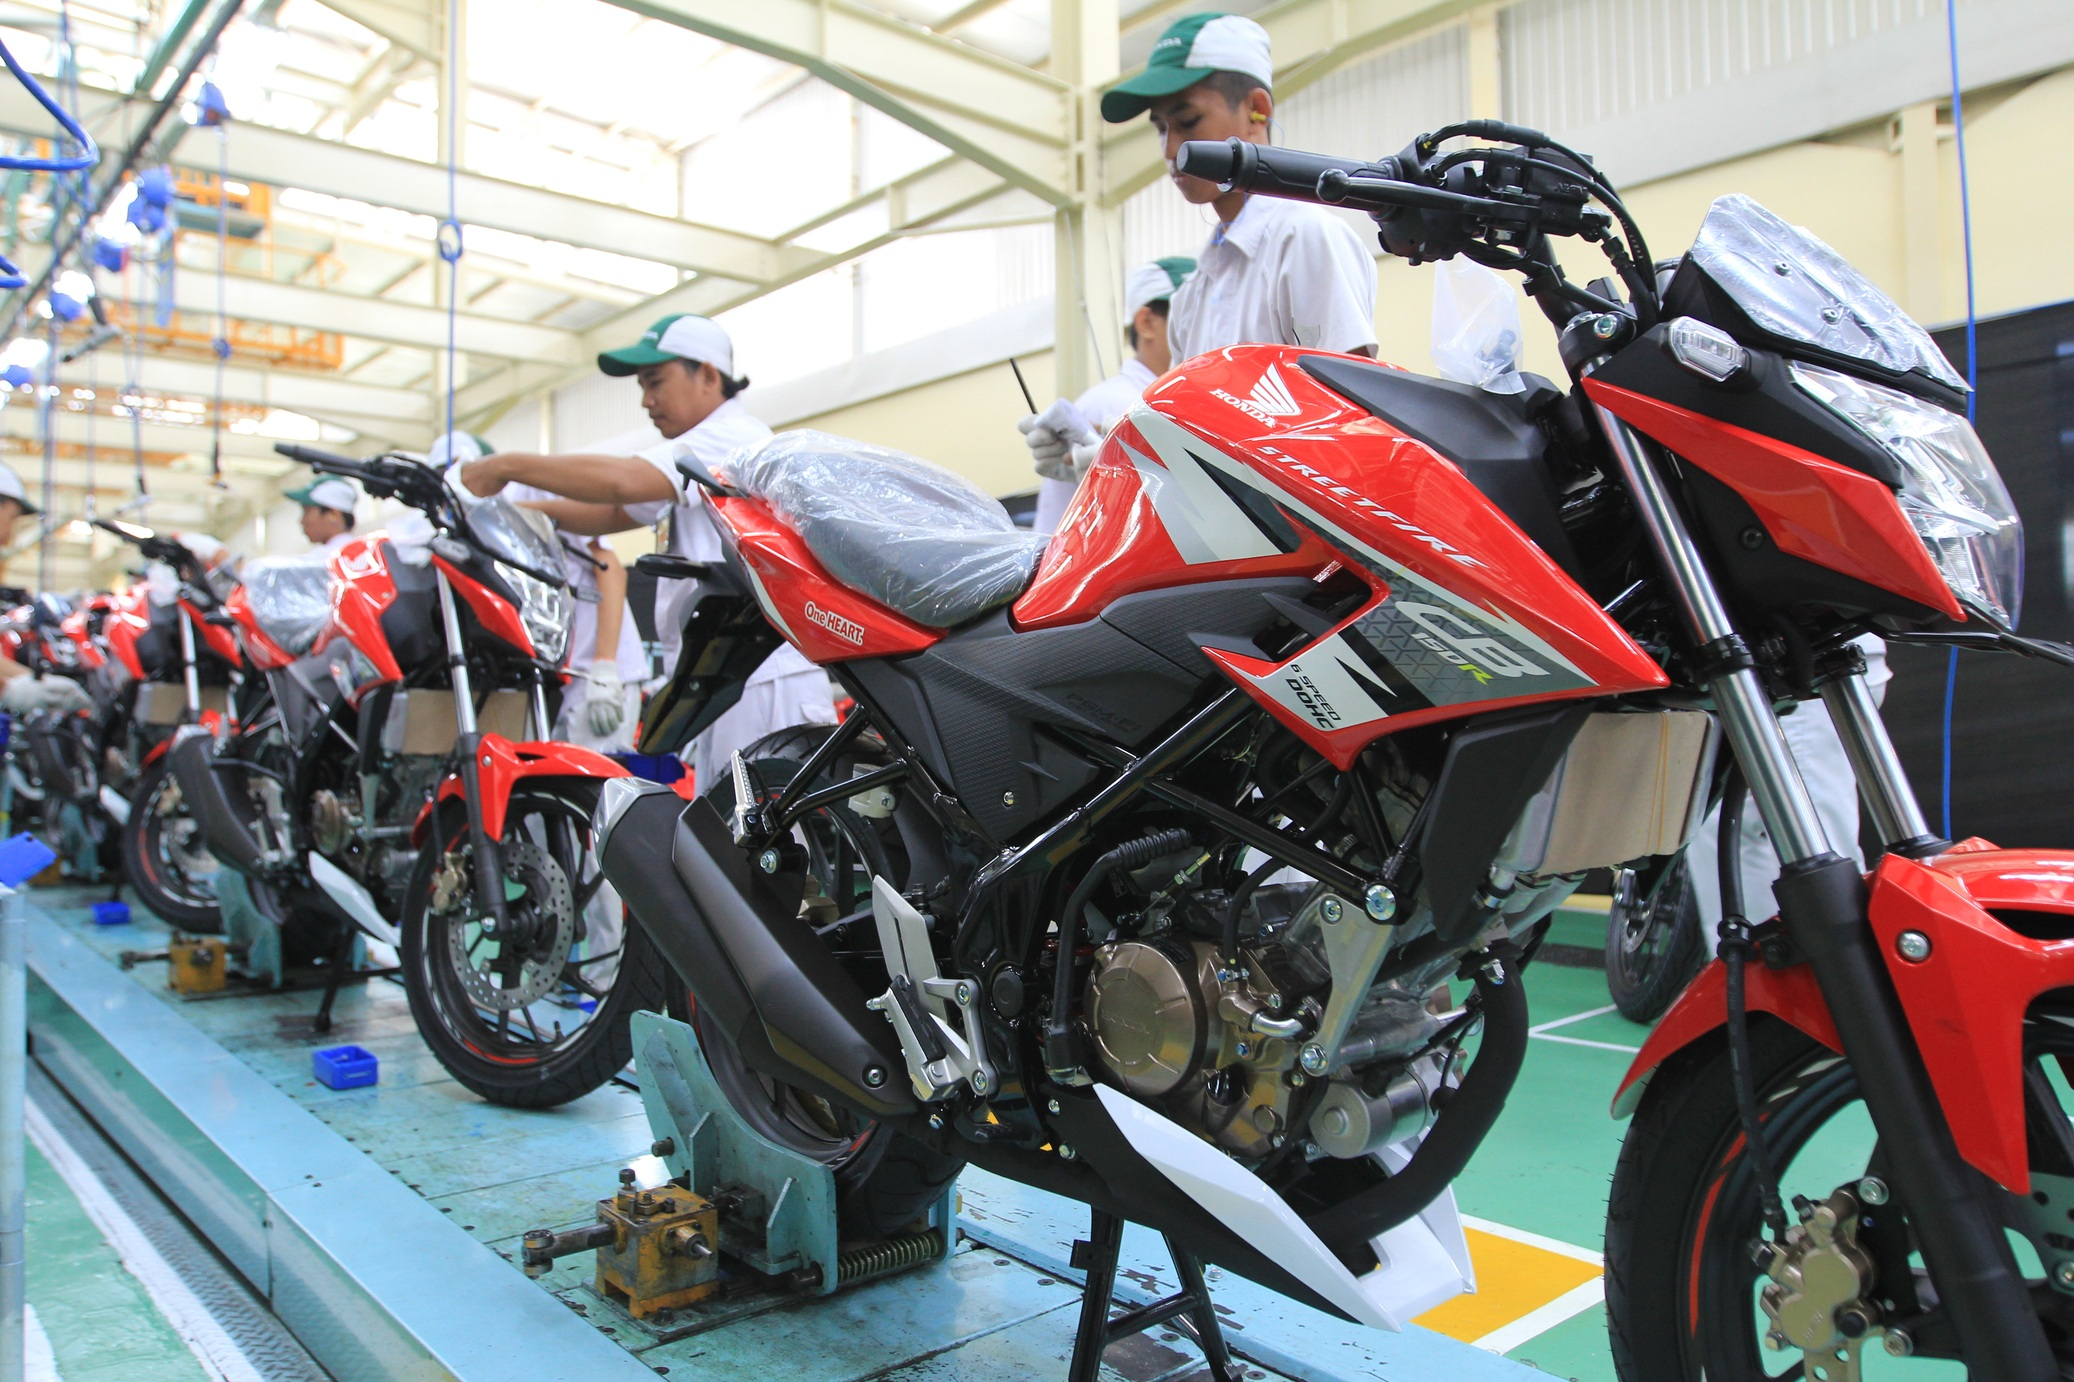 All New Honda CB150R 2016 Warna Baru Racing Red Dan Wild Black Hitam